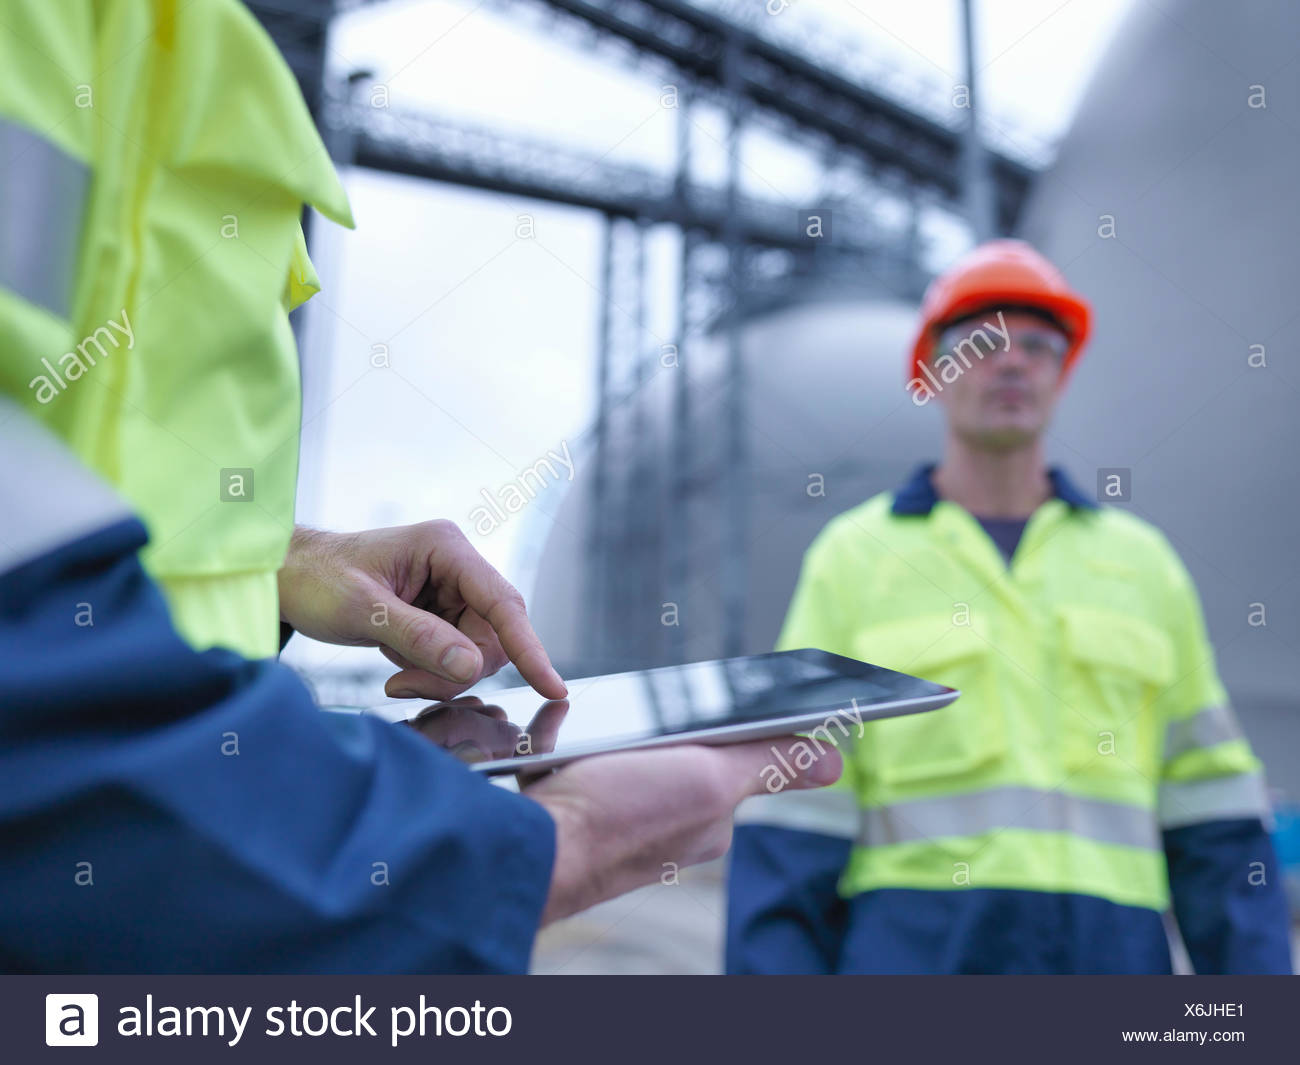 Workers using digital tablet at biomass facility, close up - Stock Image